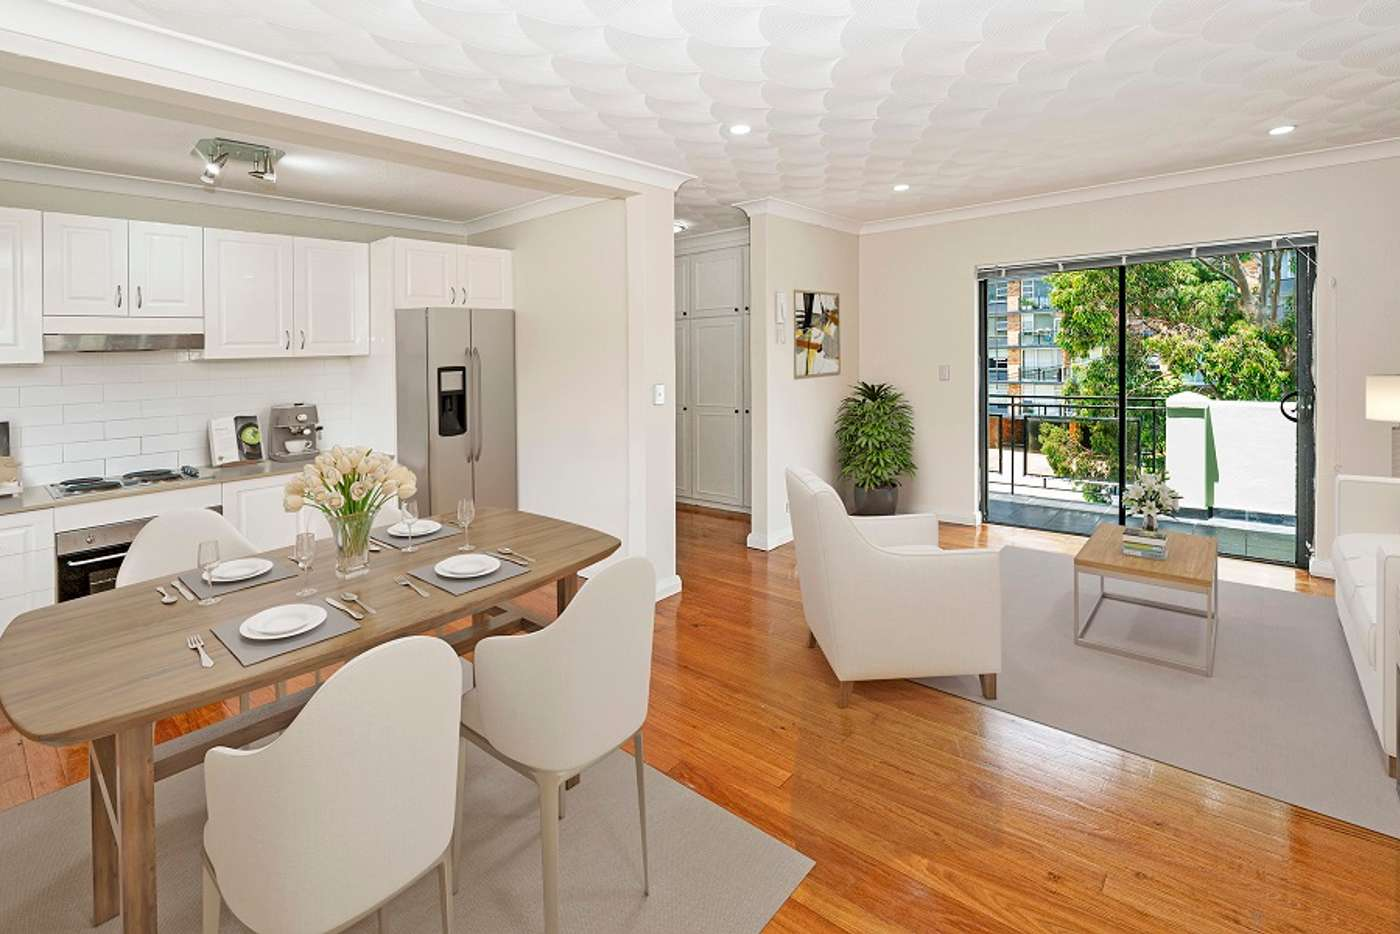 Main view of Homely apartment listing, 17-19 Abbotford Street, Kensington NSW 2033